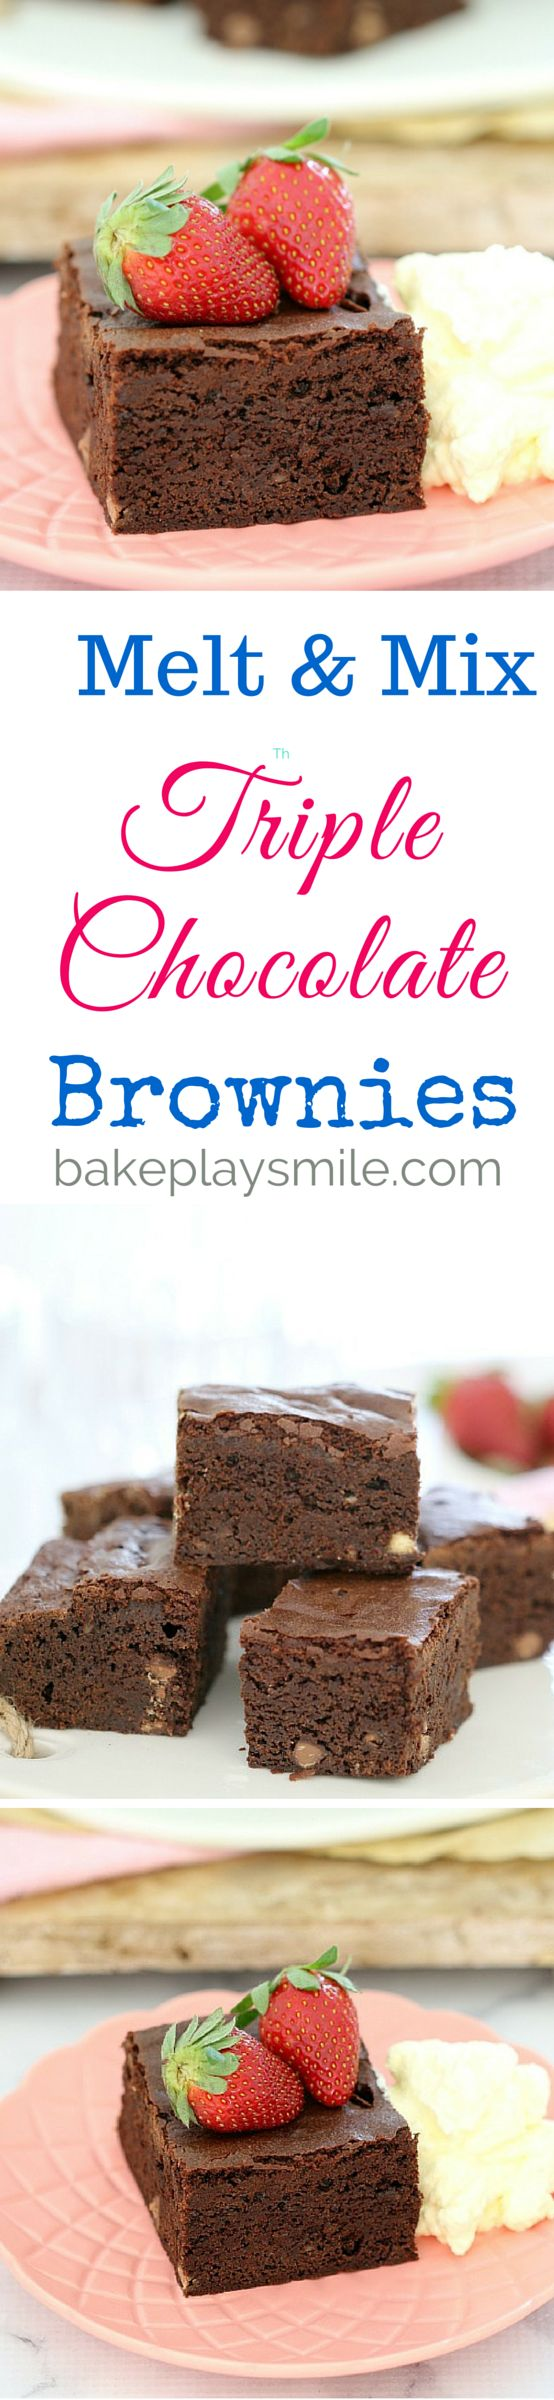 Seriously moist and decadently rich! These Melt & Mix Triple Chocolate Brownies are enough to satisfy even the biggest chocoholics out there! #easy #chocolate #brownies #triplechocolate #recipe #conventional #thermomix